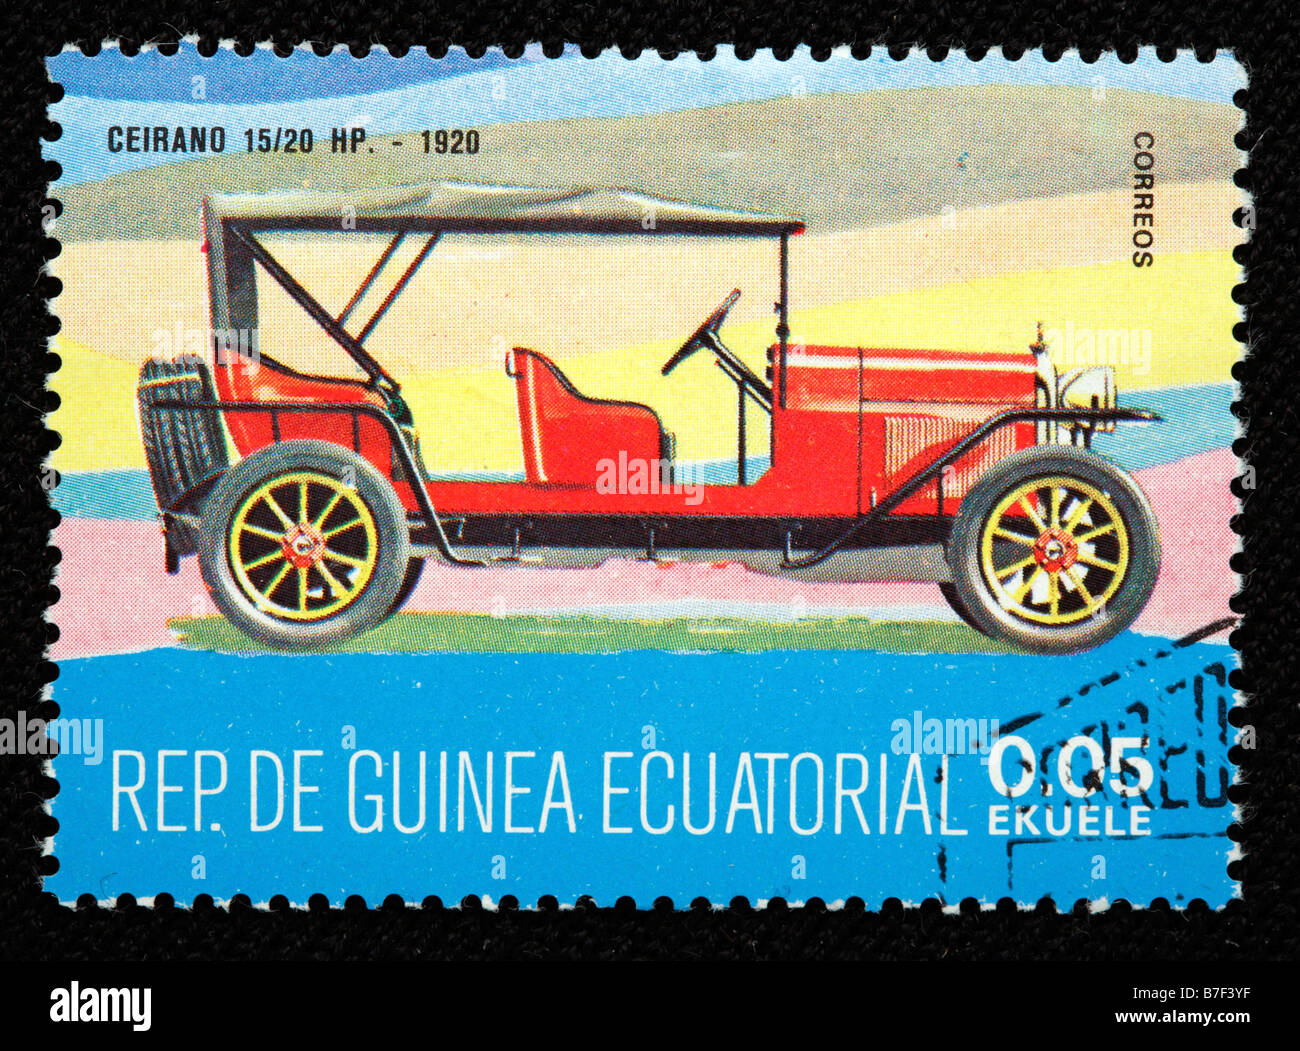 History of transport car Ceirano 15 20 HP (1920), postage stamp, Equatorial Guinea - Stock Image